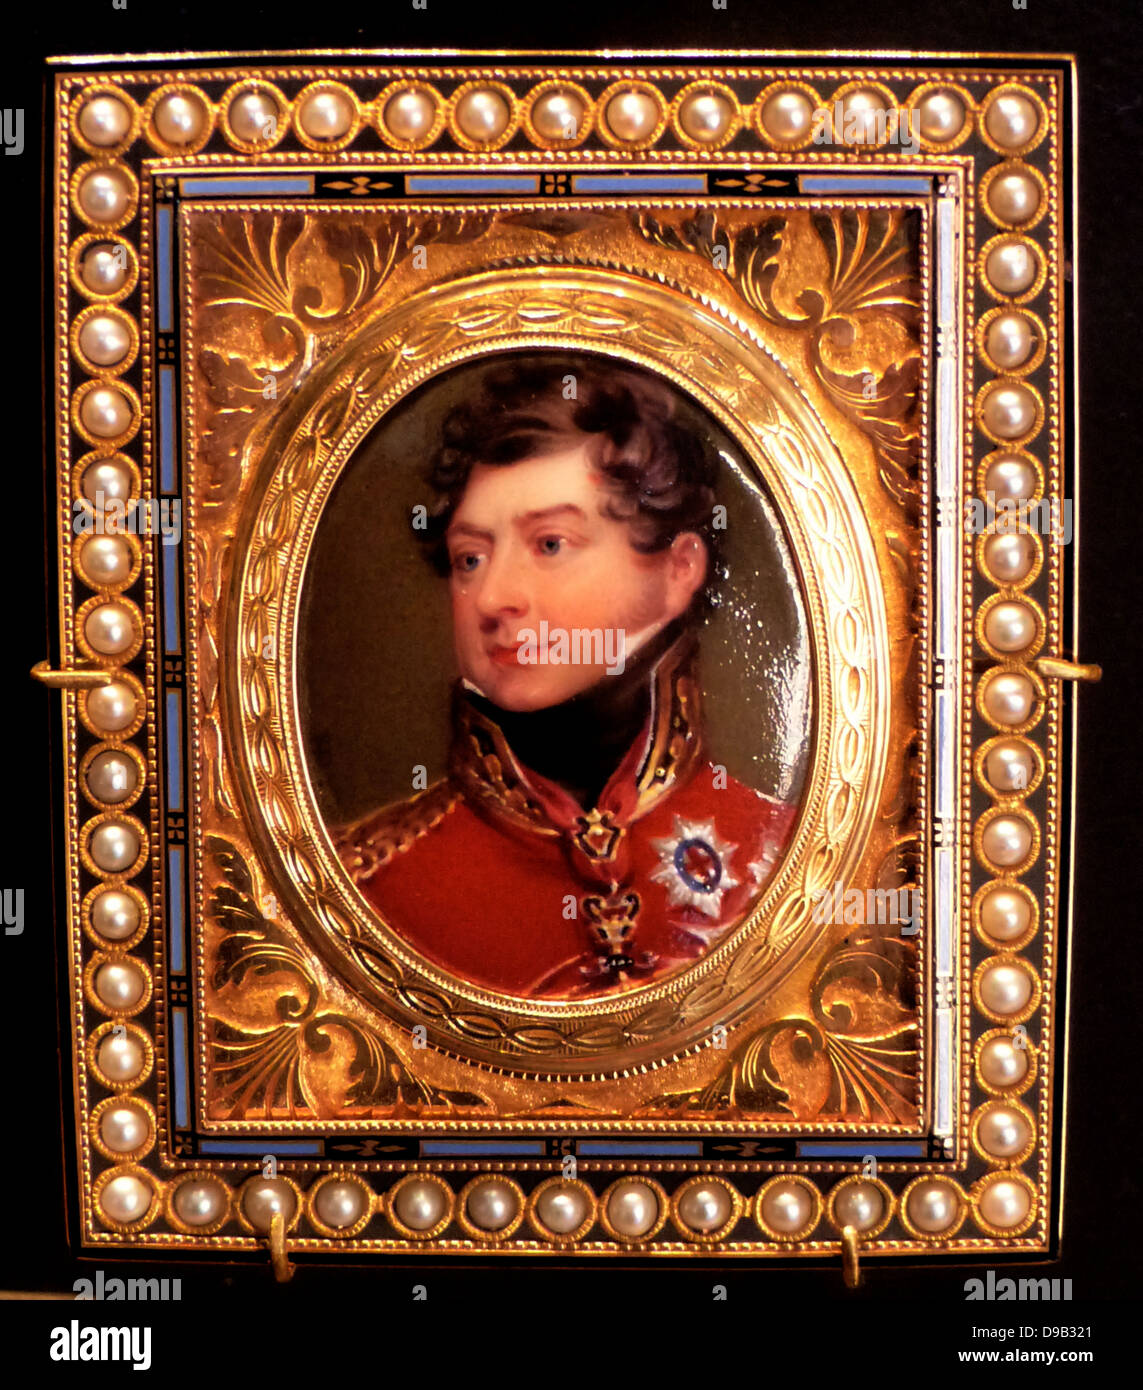 george iv the prince regent 1811 1820 George iv (born as george augustus frederick on 12 august 1762, died on 26 june 1830) was king of the united kingdom of great britain and ireland and hanover from 29 january 1820 until his death the regency , george's nine-year time as prince regent, which started in 1811 and ended with george iii's death in 1820, included winning the.